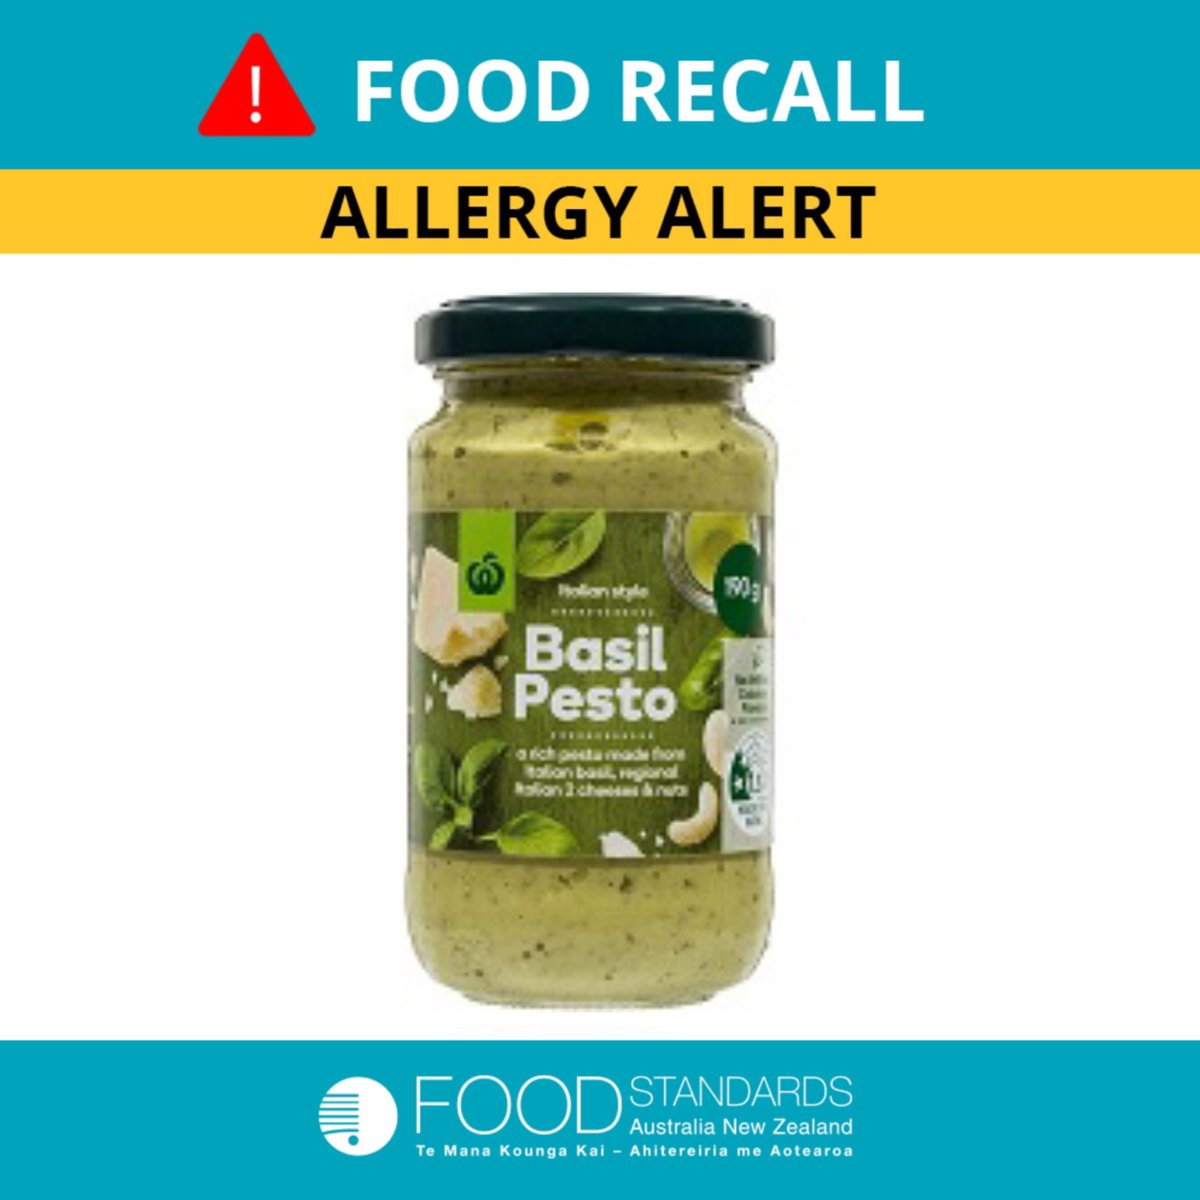 Foodstandardsausnz On Twitter Allergy Alert Woolworths Is Recalling Their Italian Style Basil Pesto 190g All Best Before Dates And All Batches Due To The Possible Presence Of An Undeclared